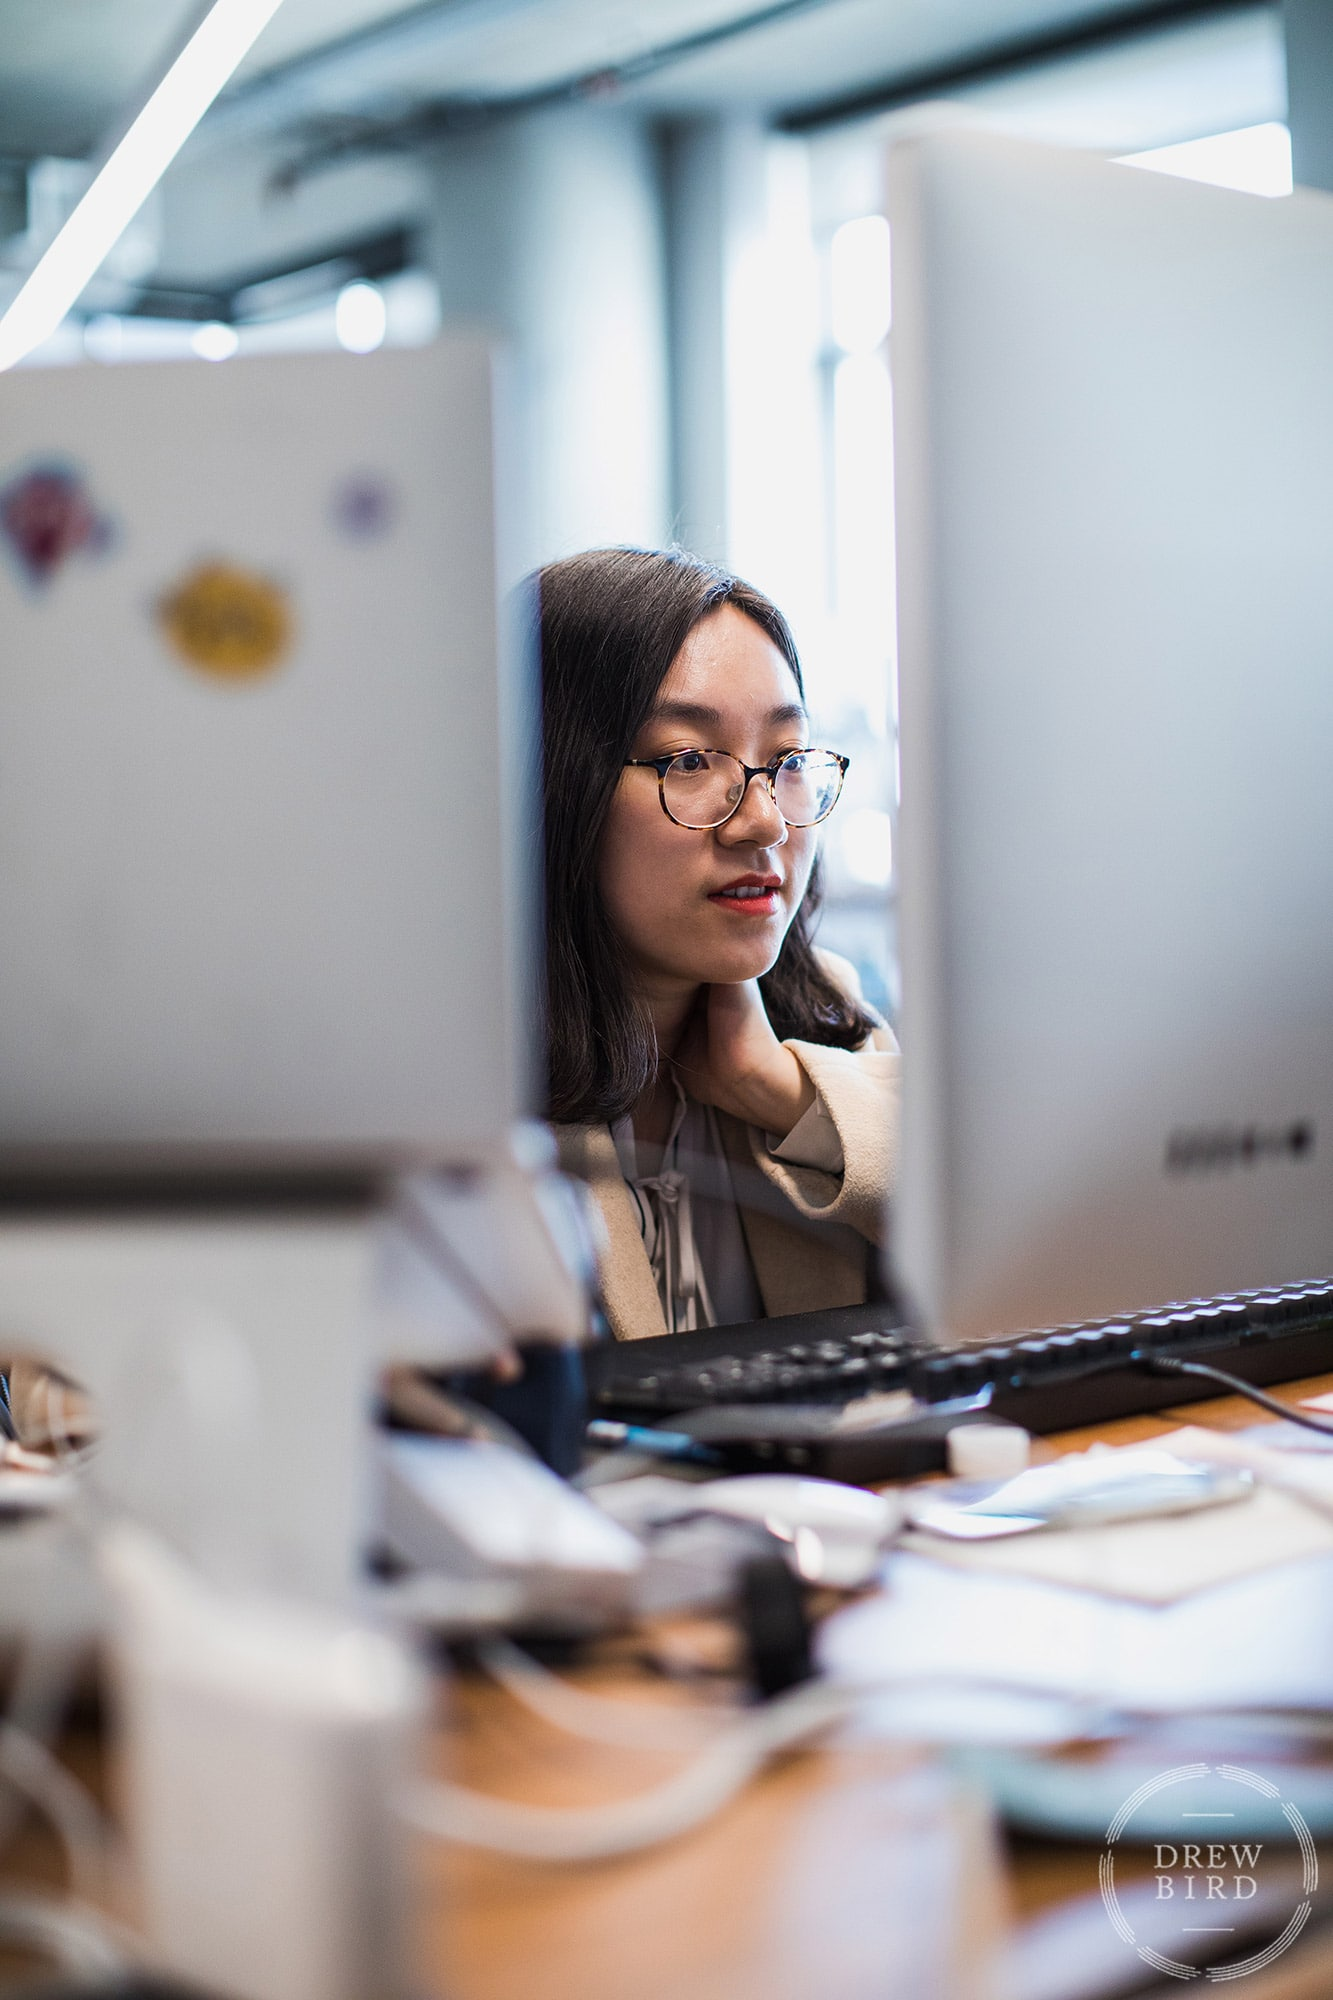 Woman with glasses working at a computer at Dropbox. San Francisco corporate lifestyle photographer Drew Bird.